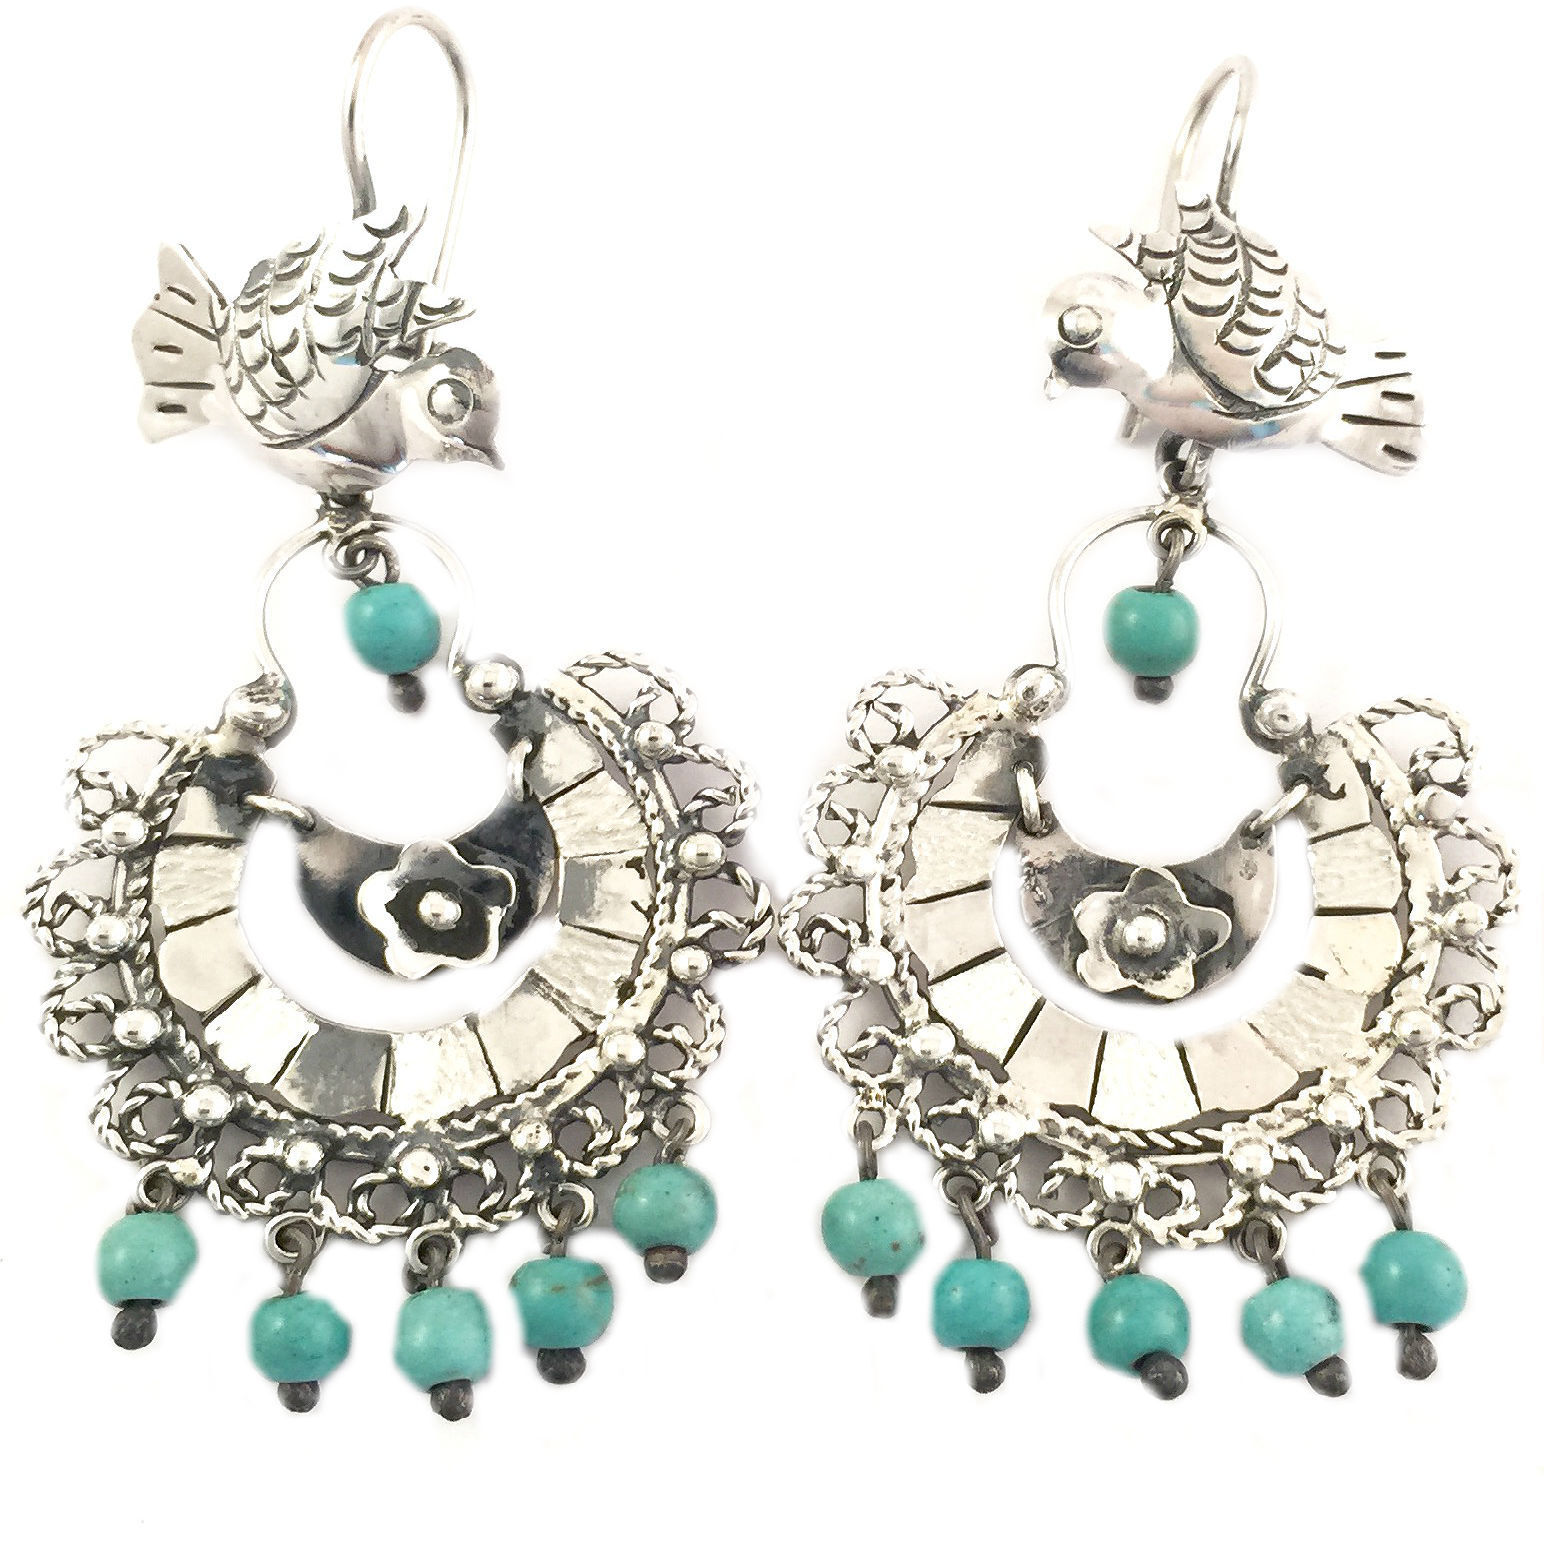 20c44bf00ba5 Details about FRIDA KAHLO STYLE TAXCO MEXICAN STERLING SILVER TURQUOISE  BIRD EARRINGS MEXICO